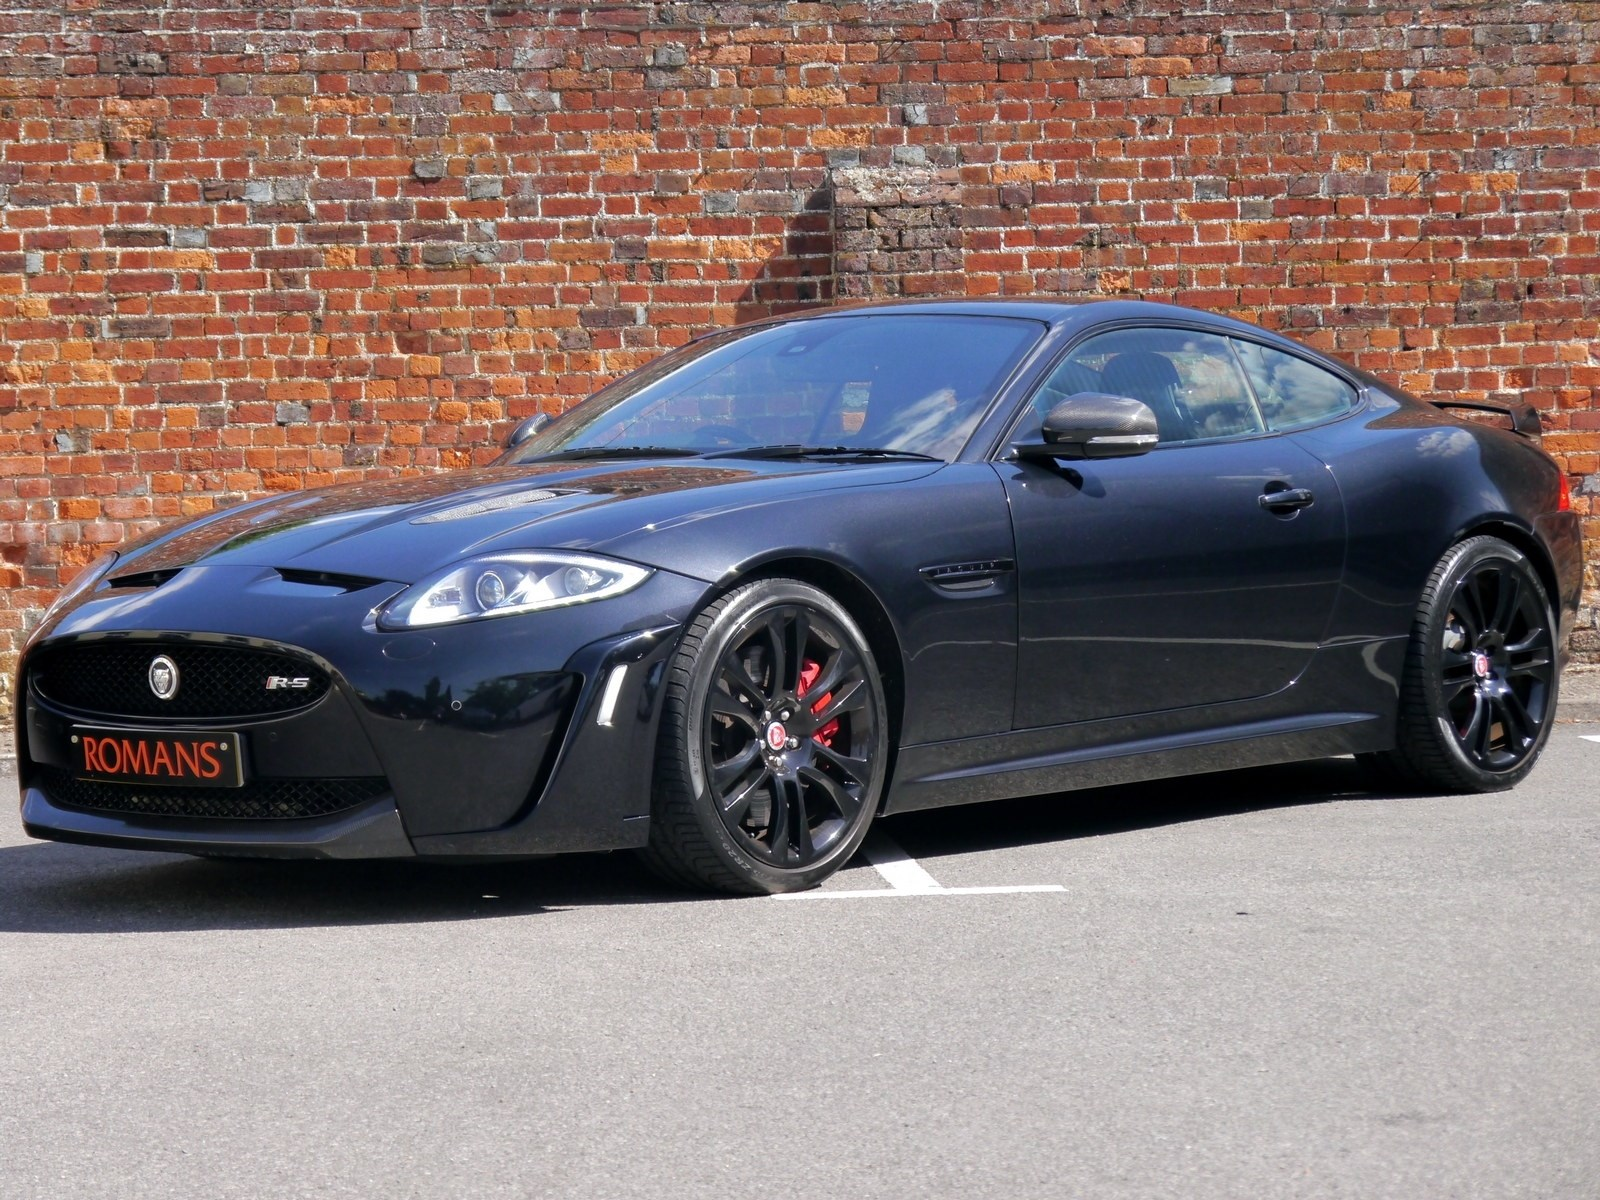 Jaguar XKR-S 5 0 V8 Supercharged - Reversing Camera